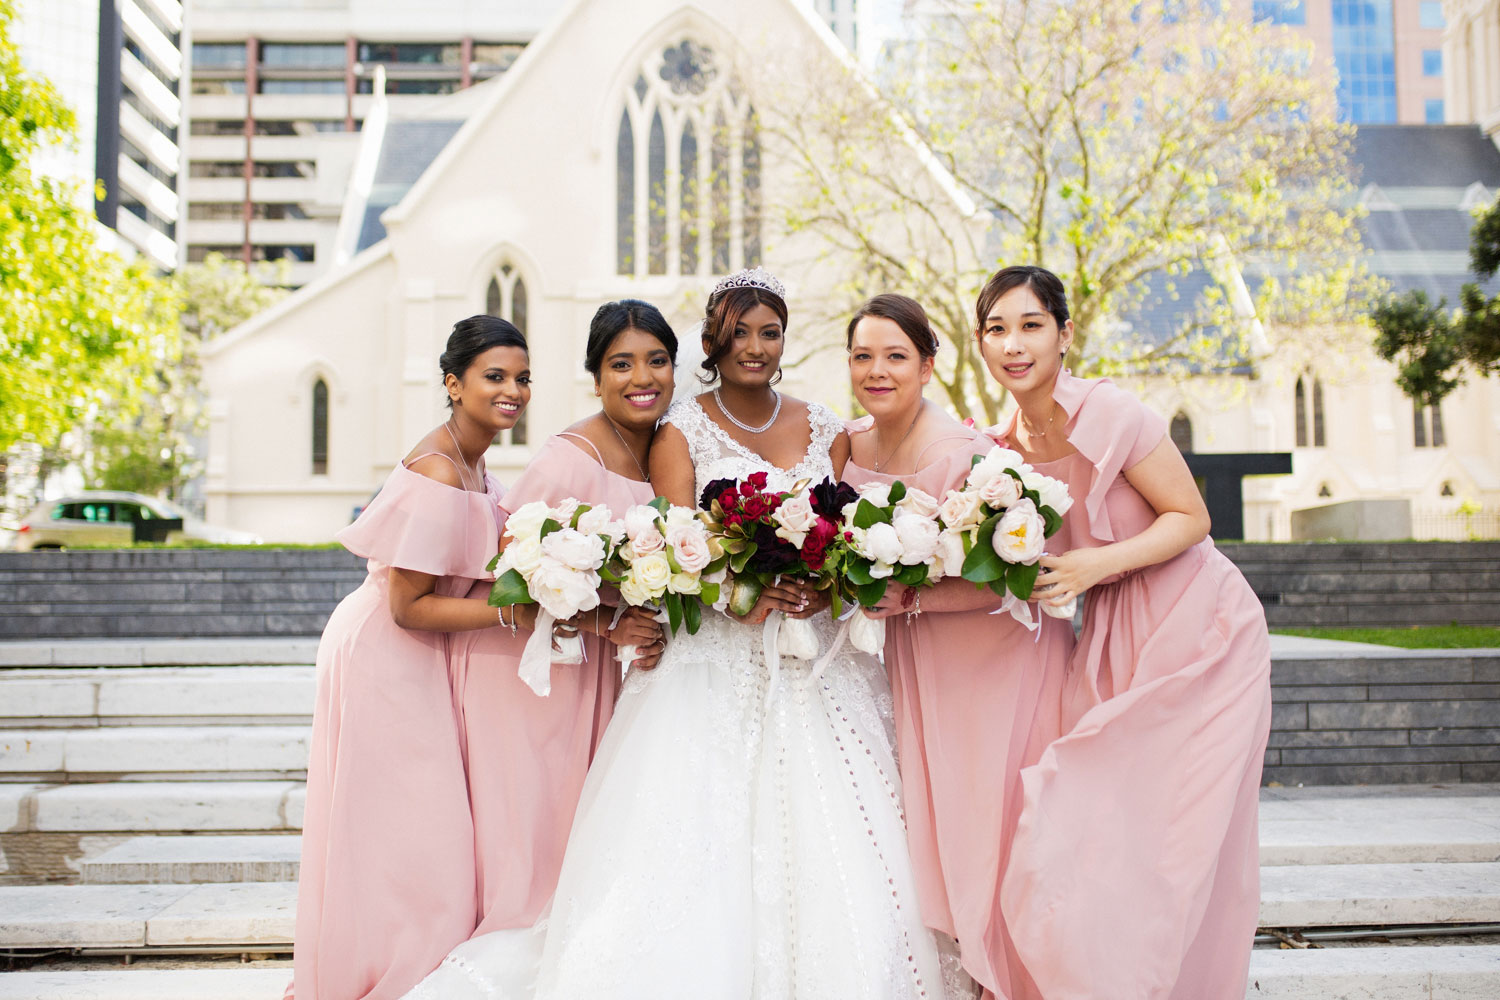 auckland wedding bride and bridesmaids